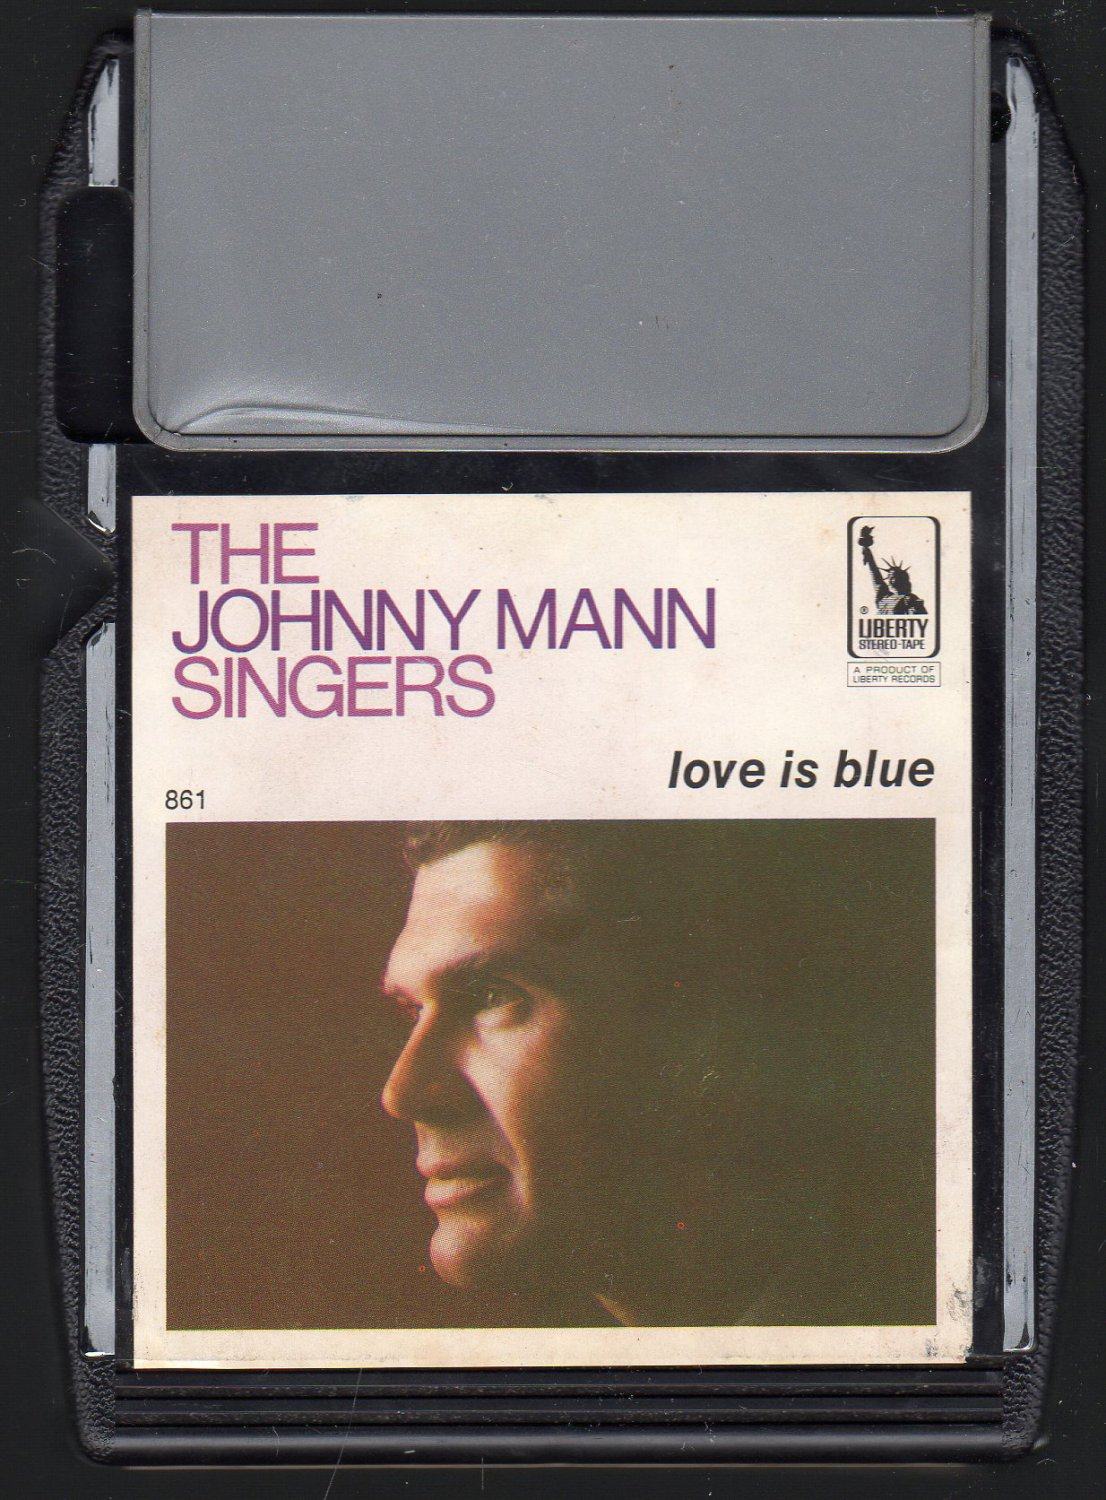 The Johnny Mann Singers - Love Is Blue 1968 LIBERTY A30 8-track tape